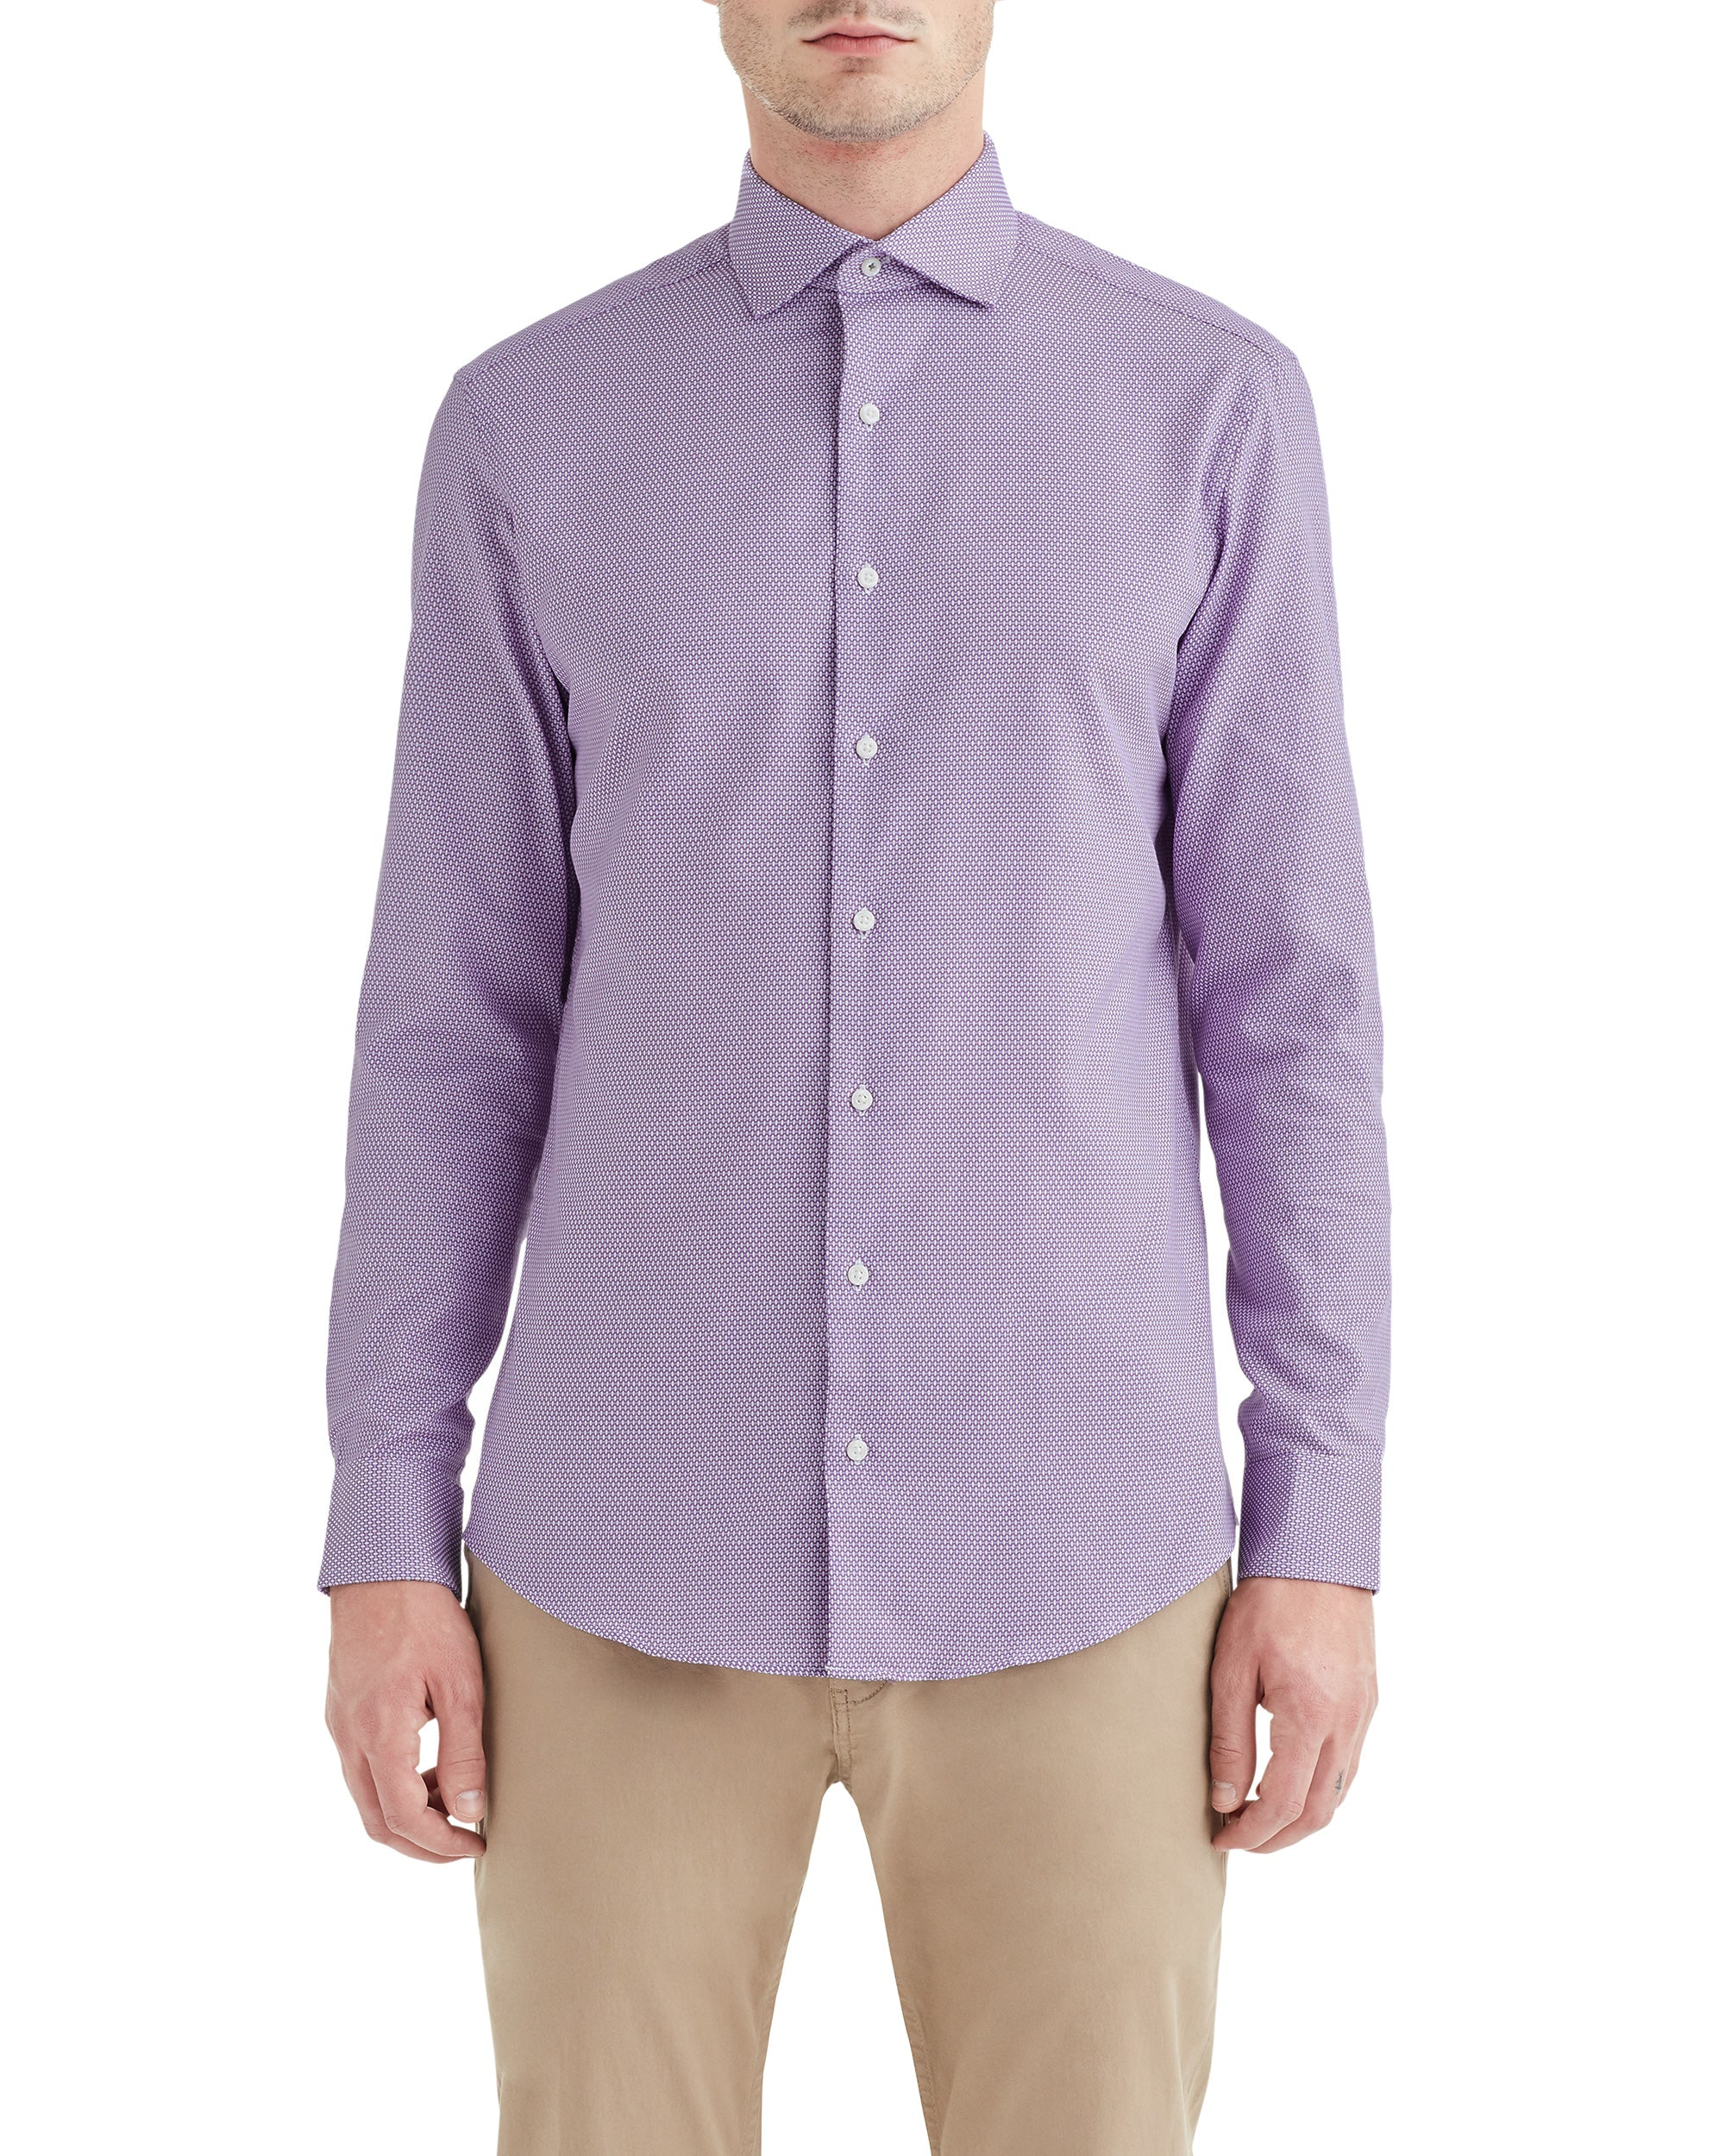 Purple Textured Dobby Slim-Fit Dress Shirt